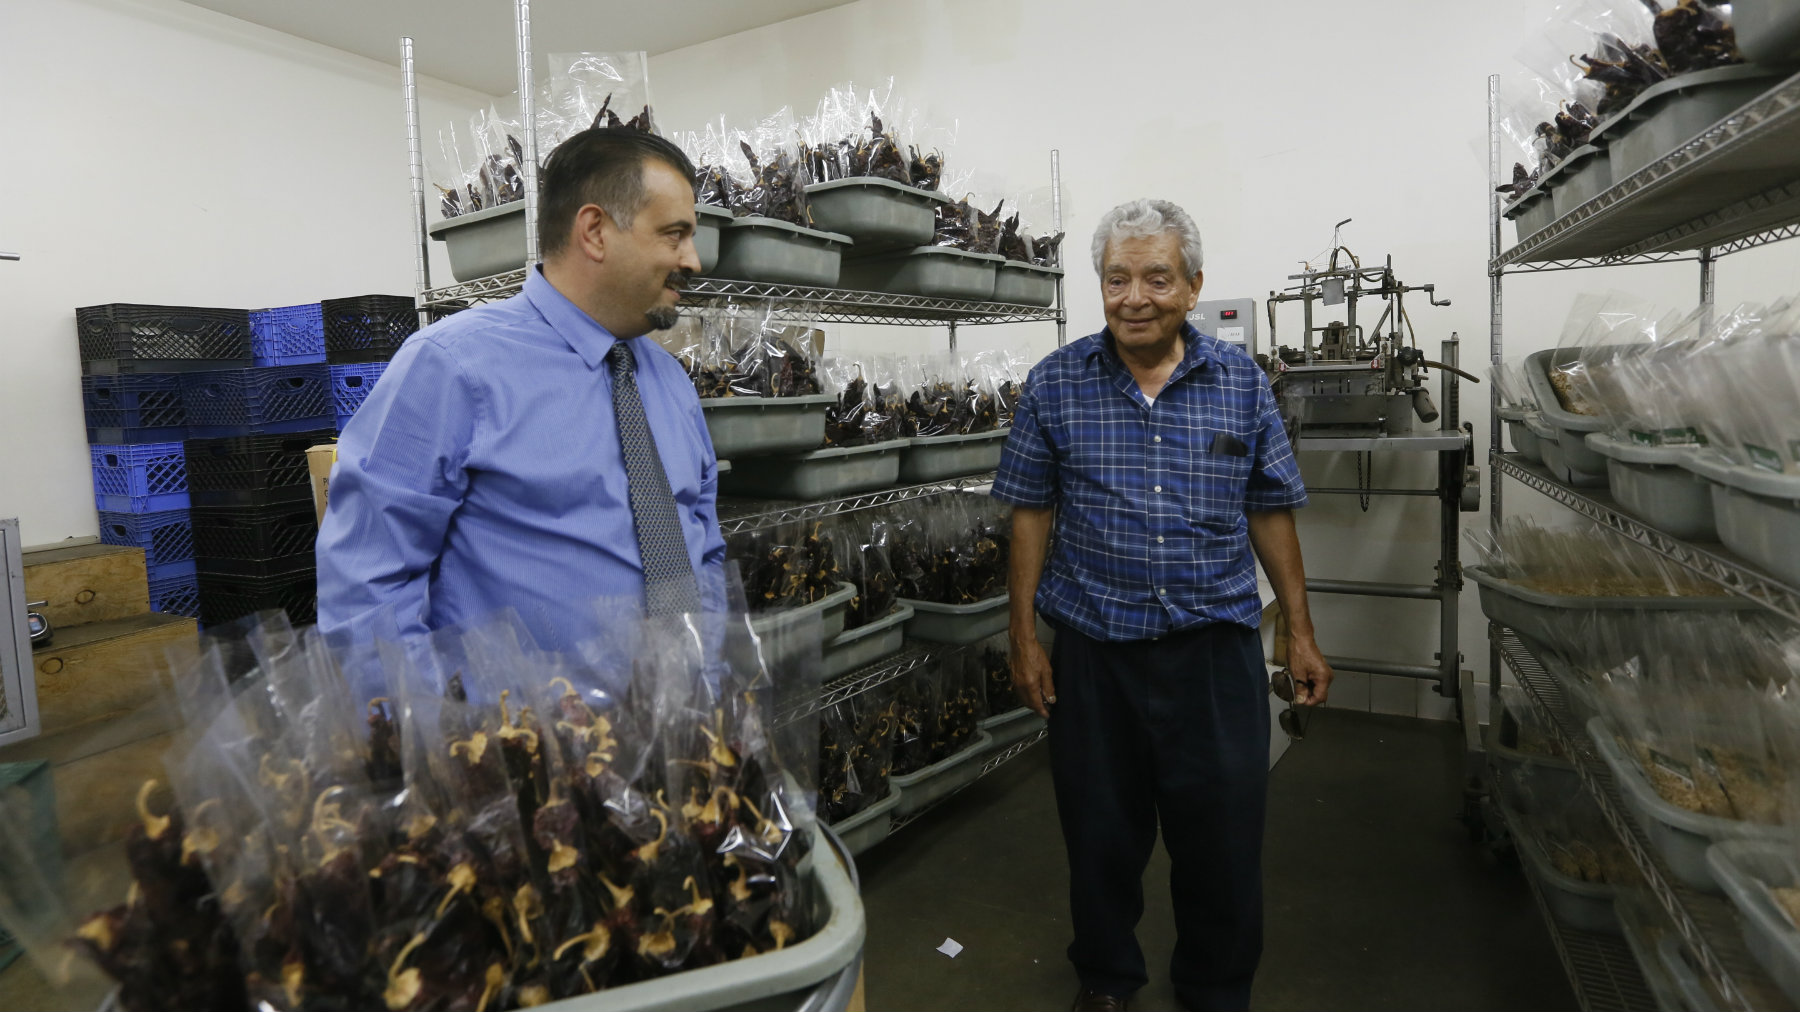 Omar Martinez, left, with his father, Jose Guadalupe pose in 2013 at their family-owned Miravalle Foods spices and herbs business in El Monte, California.